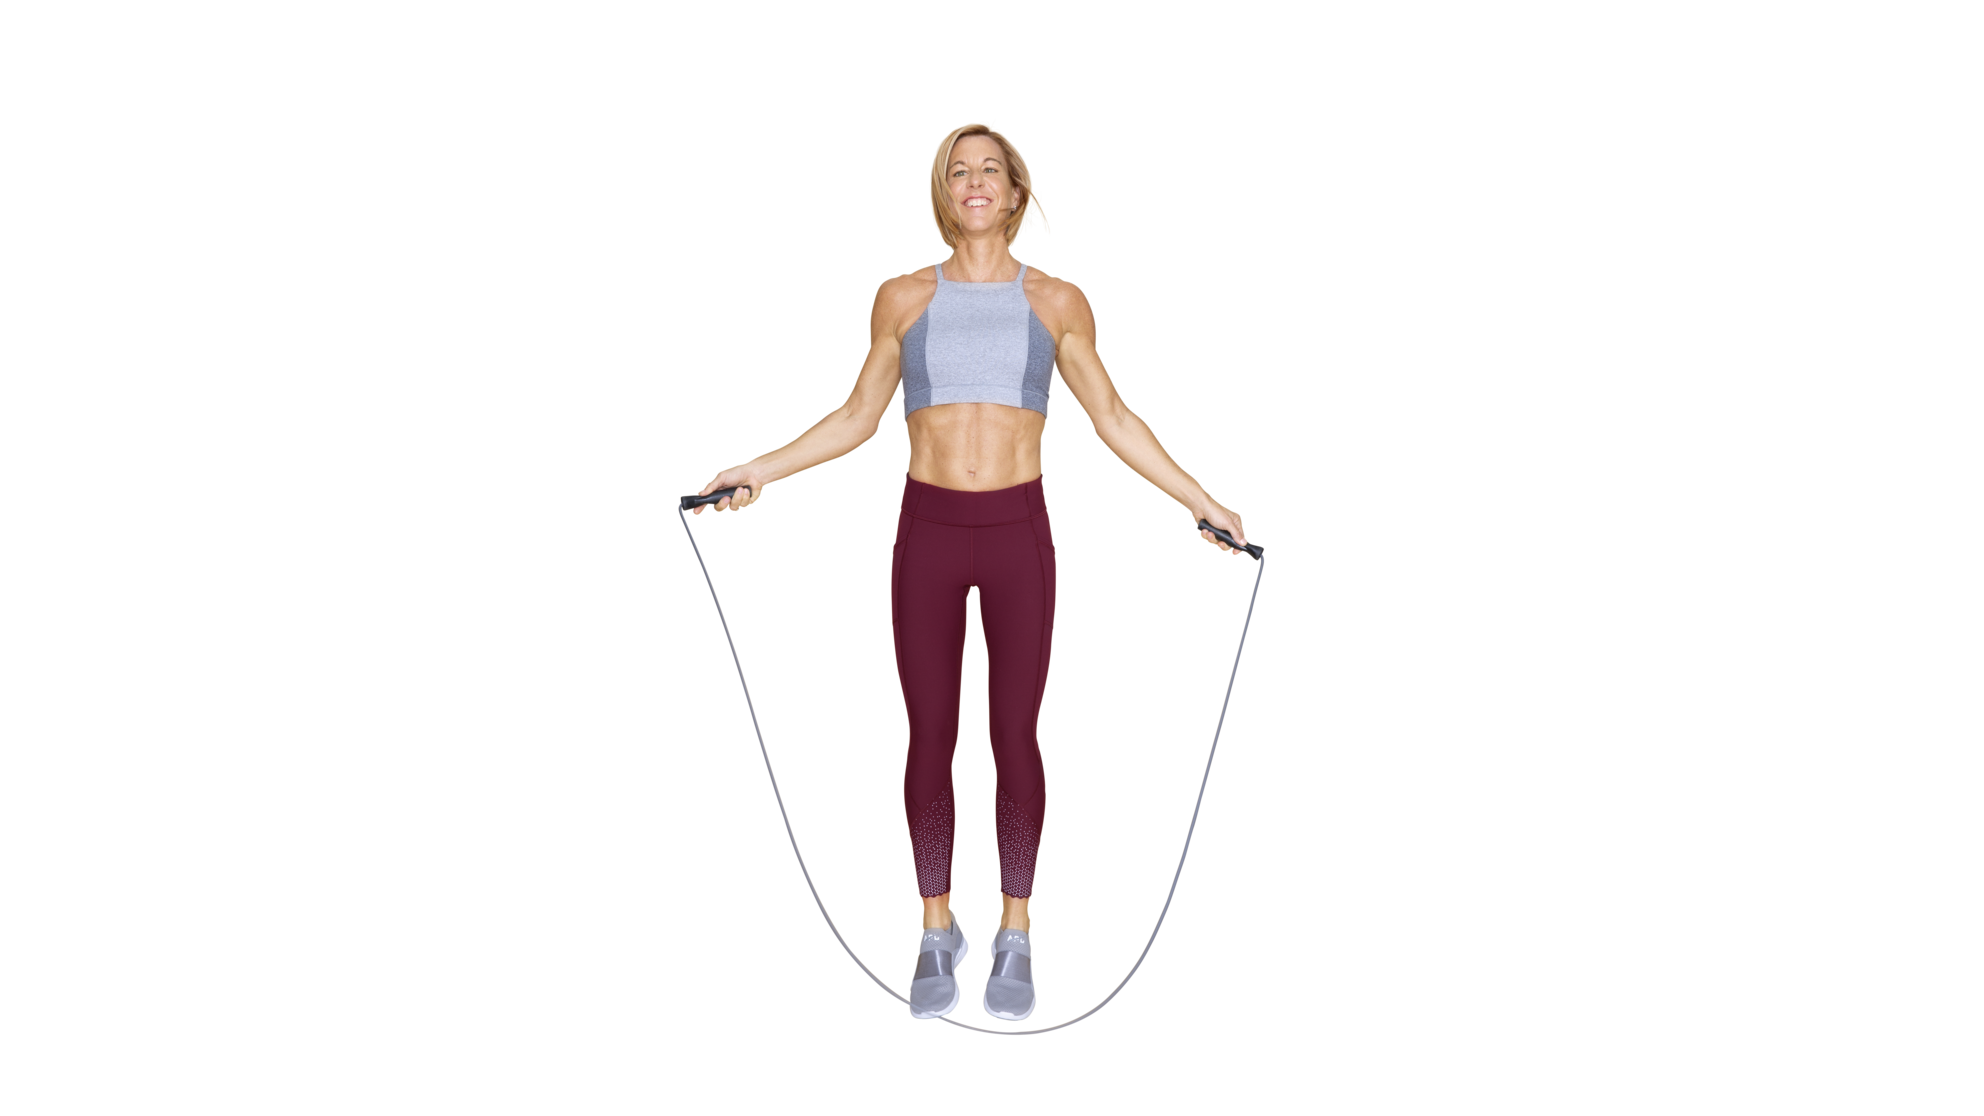 Get Your Heart Pumping With This HIIT Jump Rope Circuit From Kira Stokes